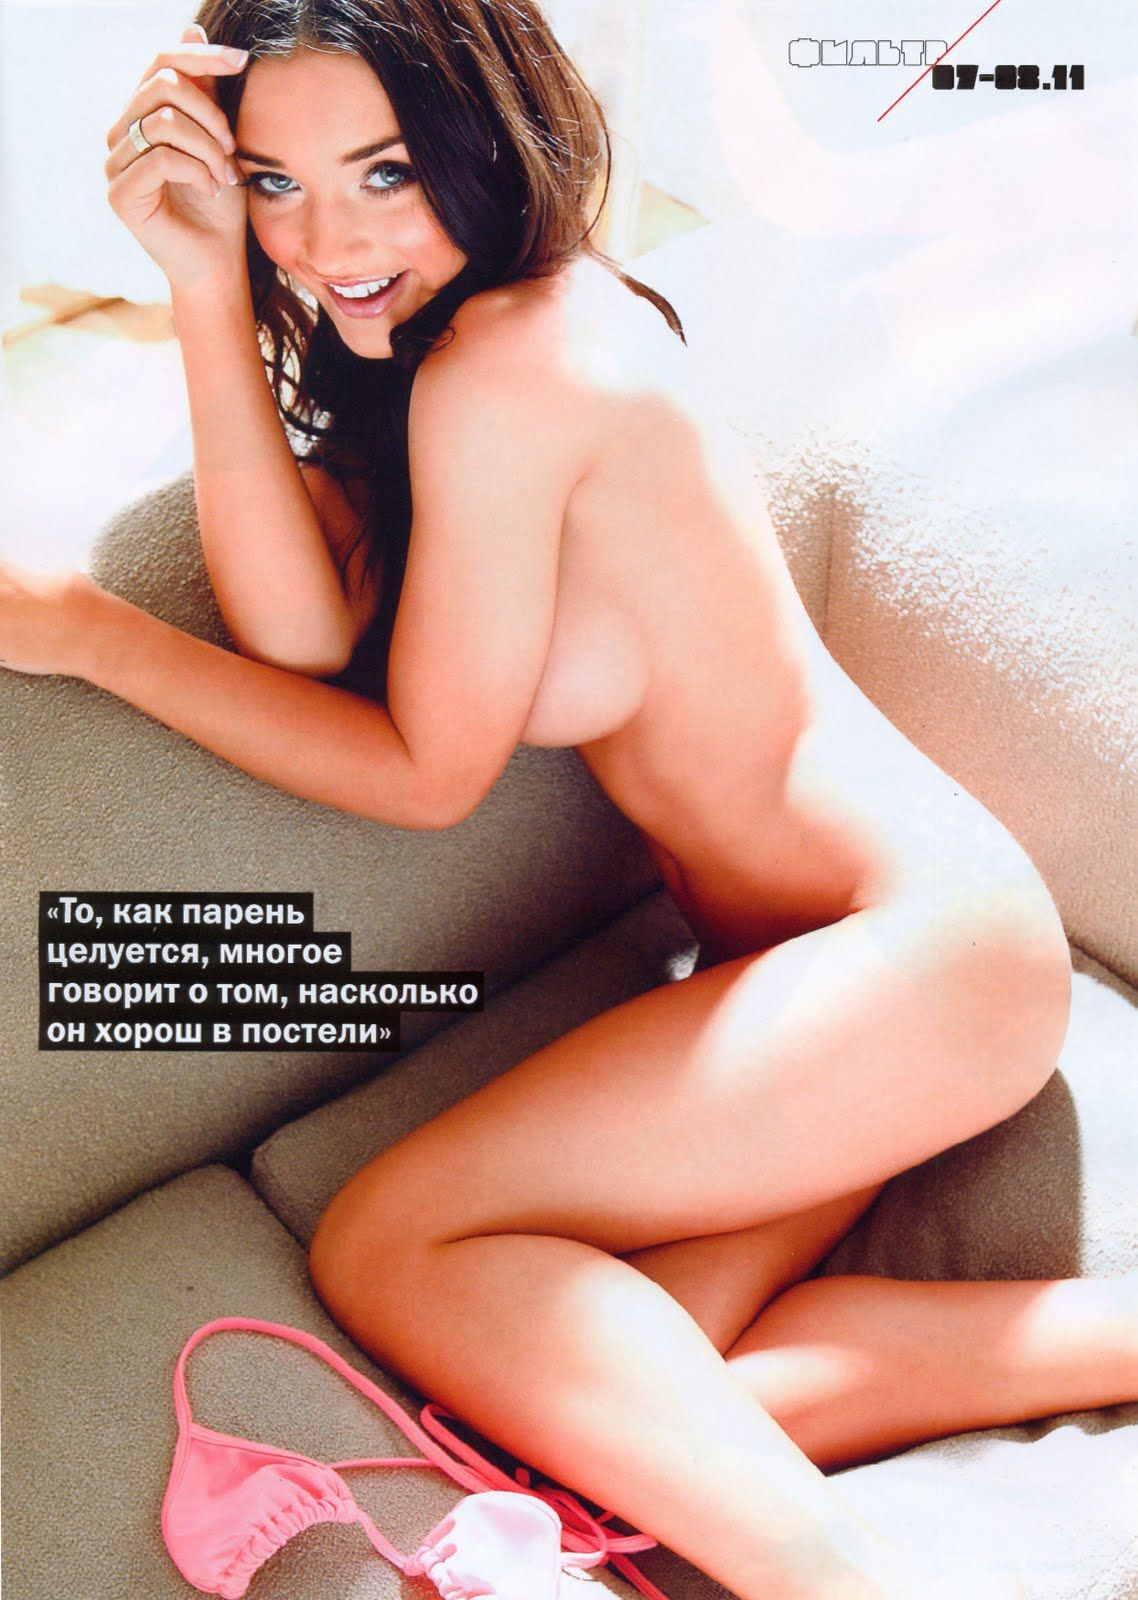 Amy Jackson Nude Pictures pin on amy jackson